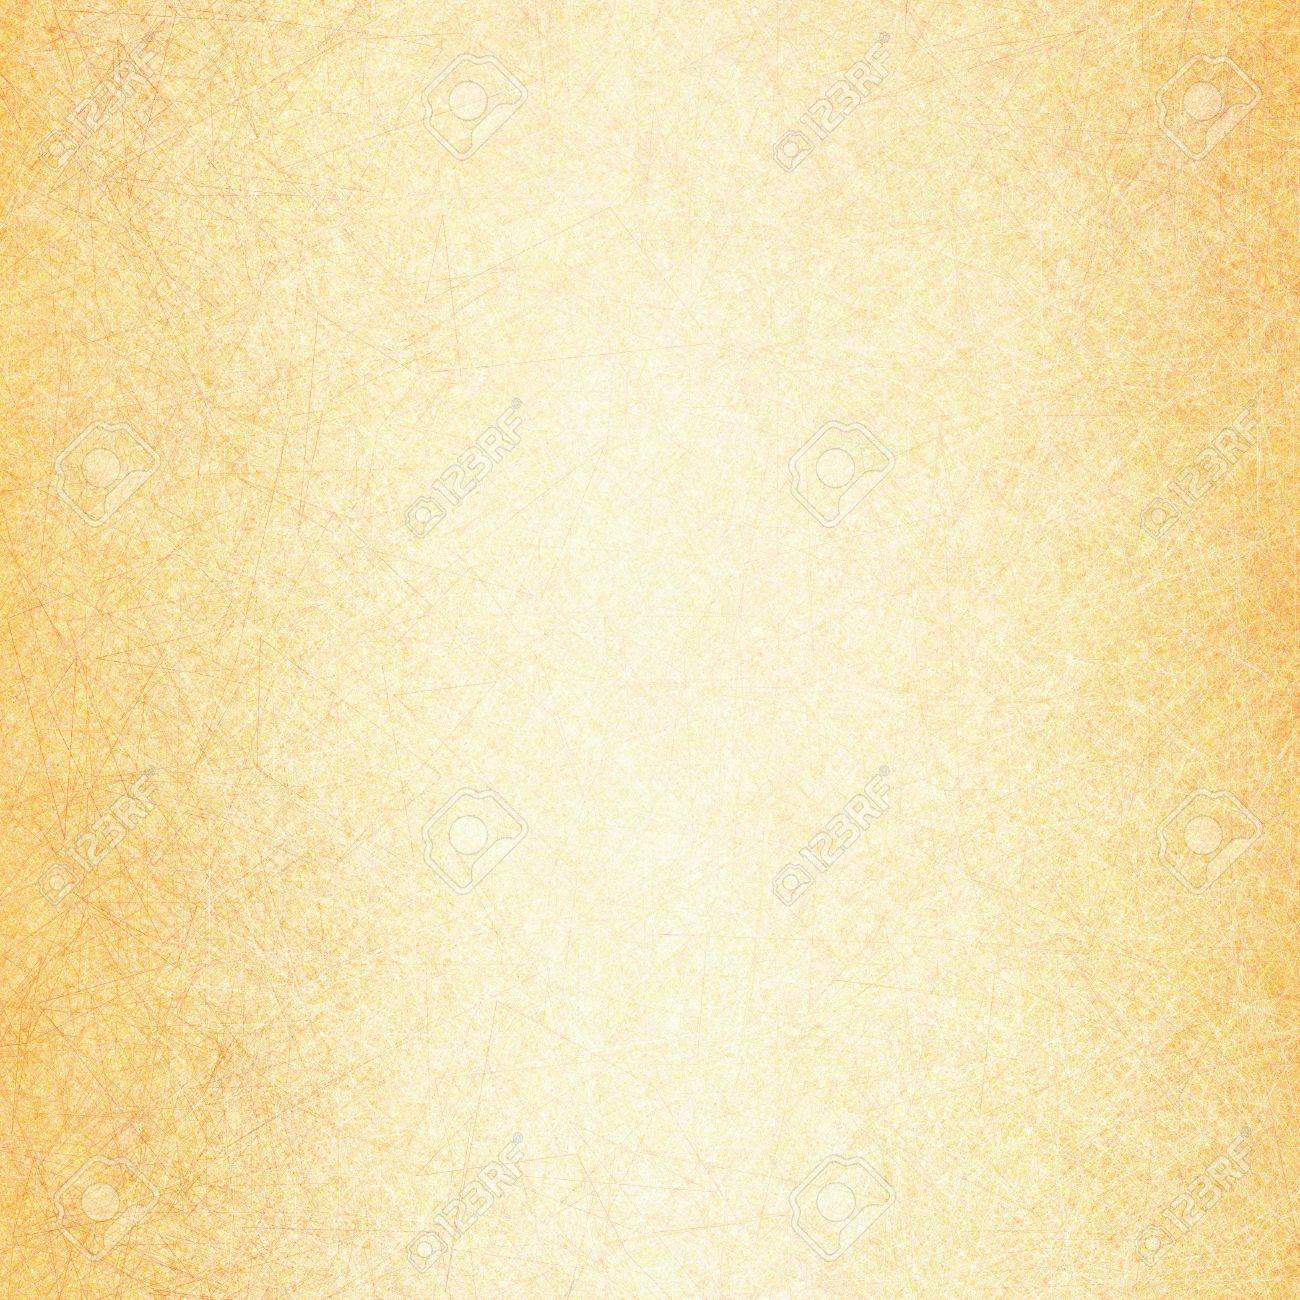 Yellow Gold Background With Textured Linen Or Canvas Line Brush ...